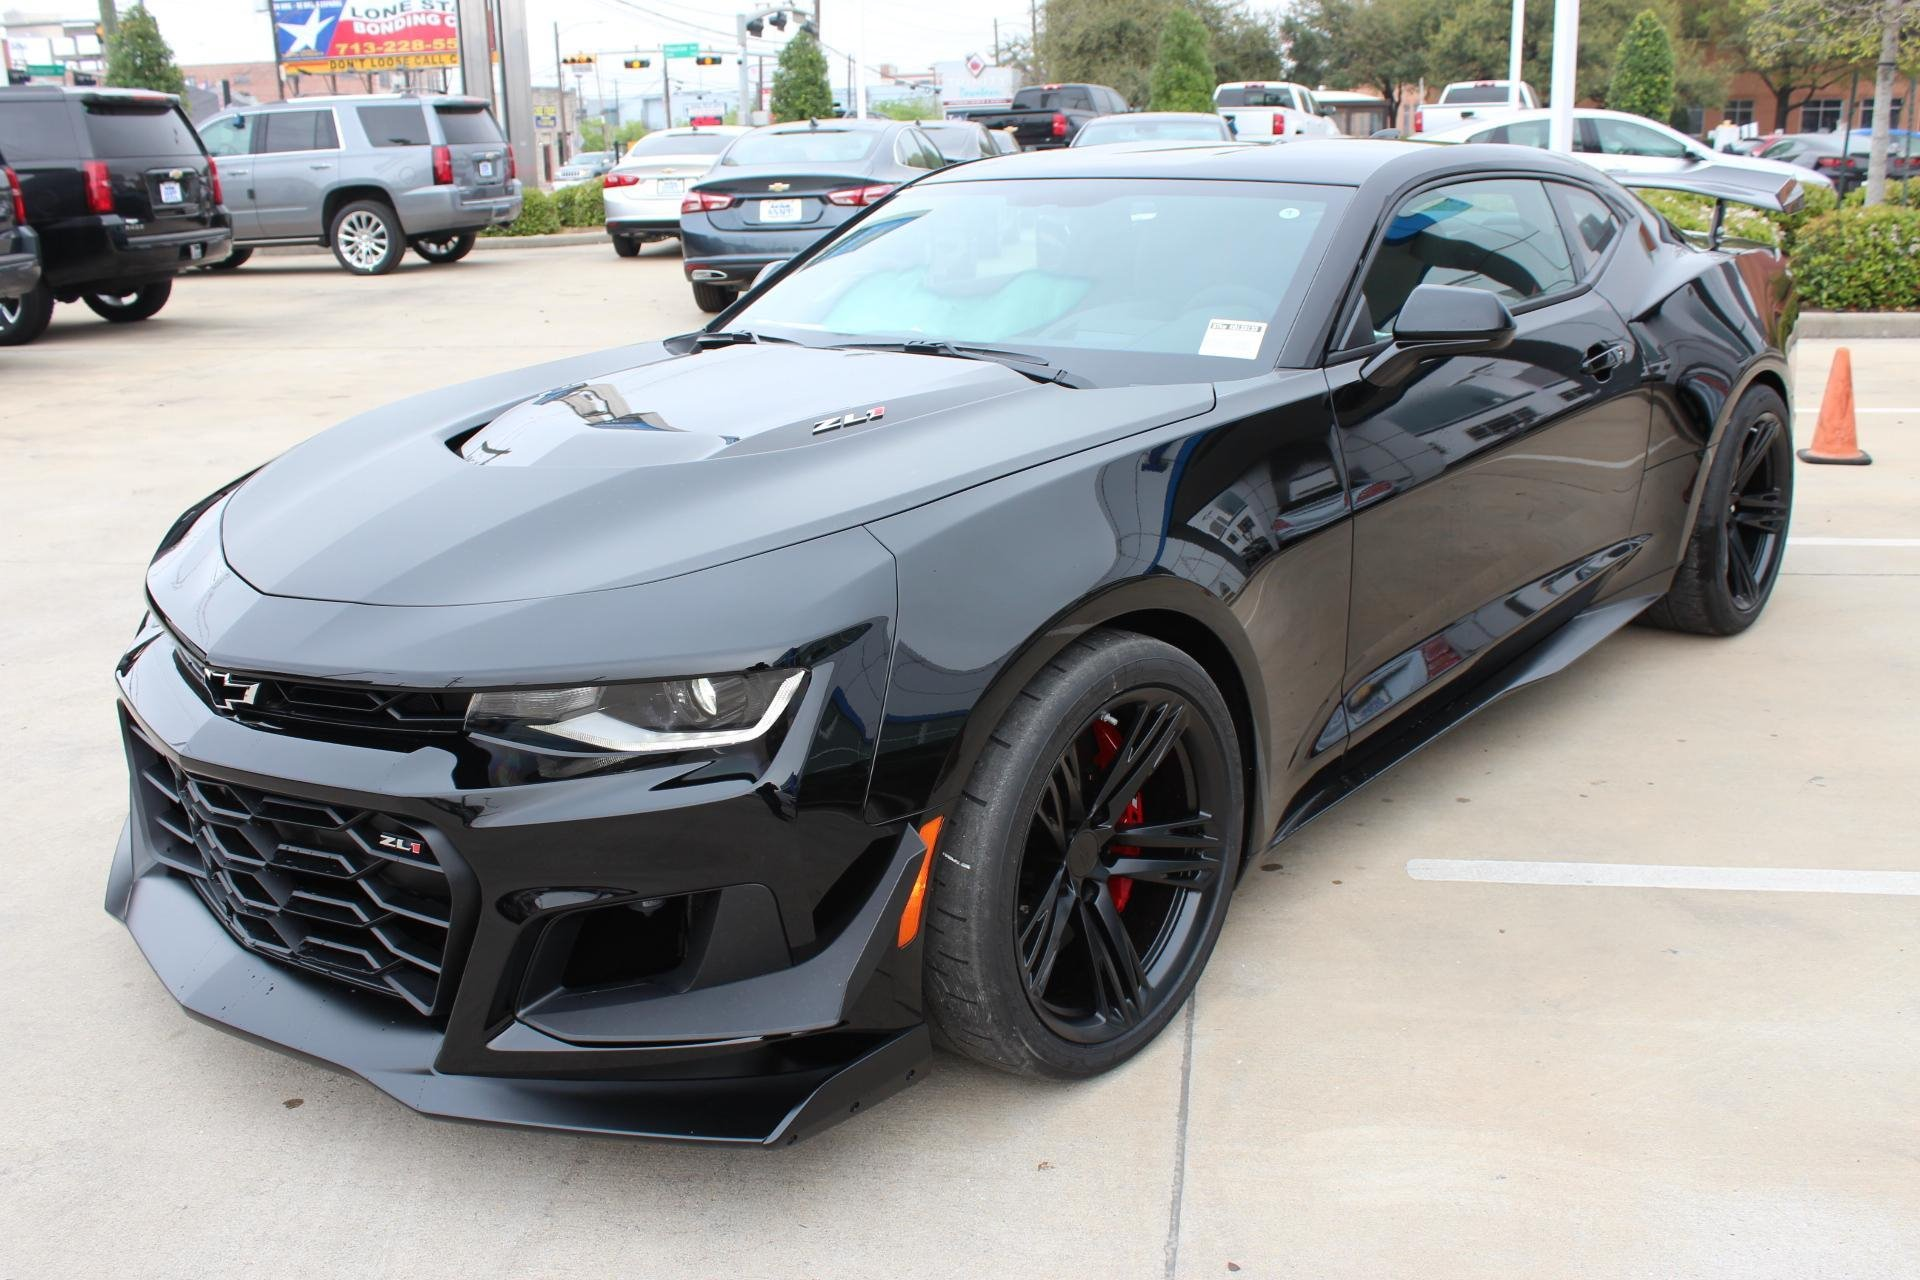 New 2019 Chevrolet-Camaro SS Camaro SS for sale $42,000 at M and V Leasing in Brooklyn NY 11223 1